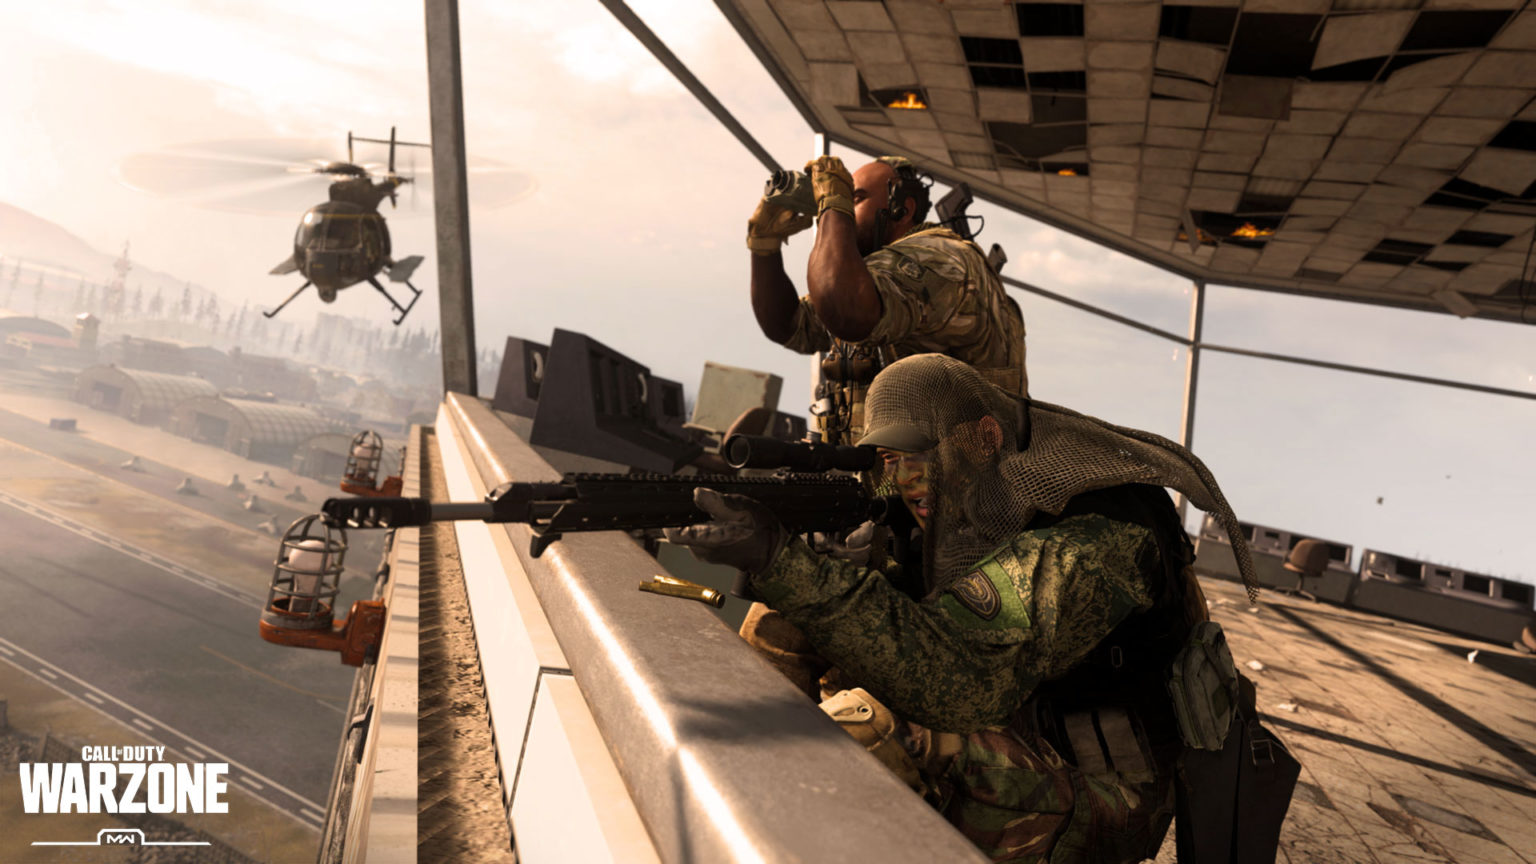 How to Activate Third Person Camera View in Call of Duty Warzone?